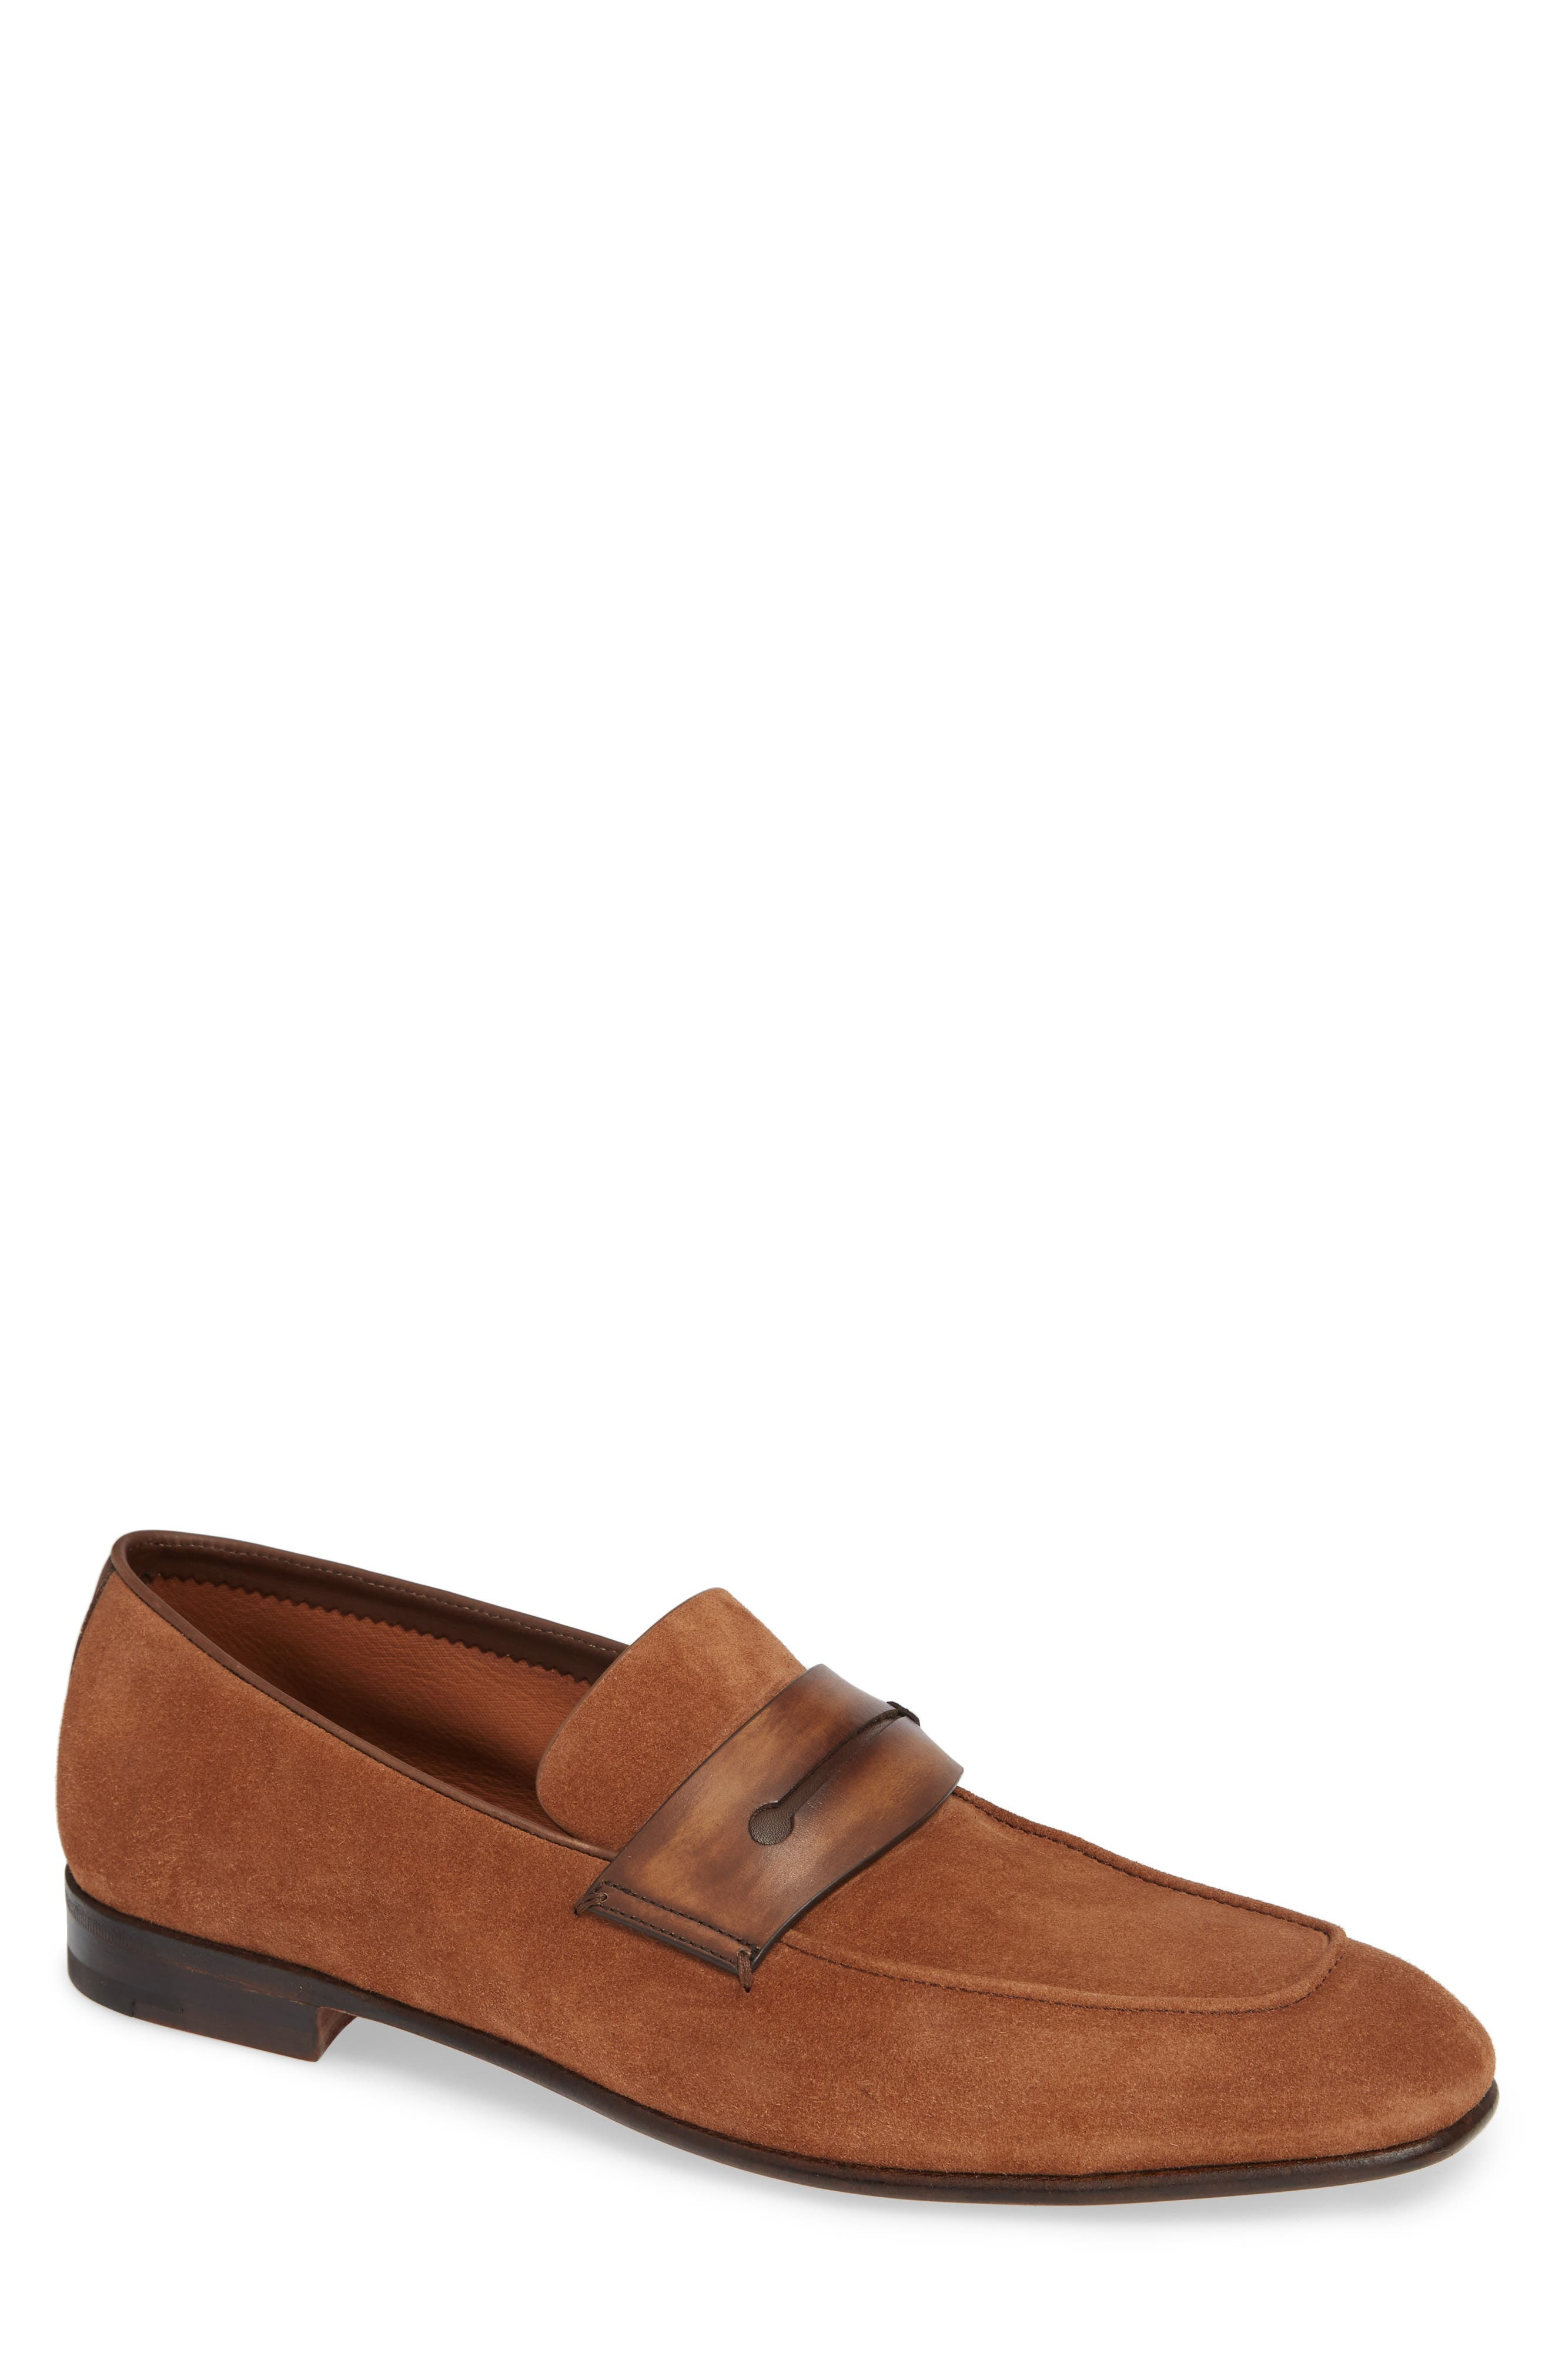 Penny Loafer,                         Main,                         color, BROWN/BROWN